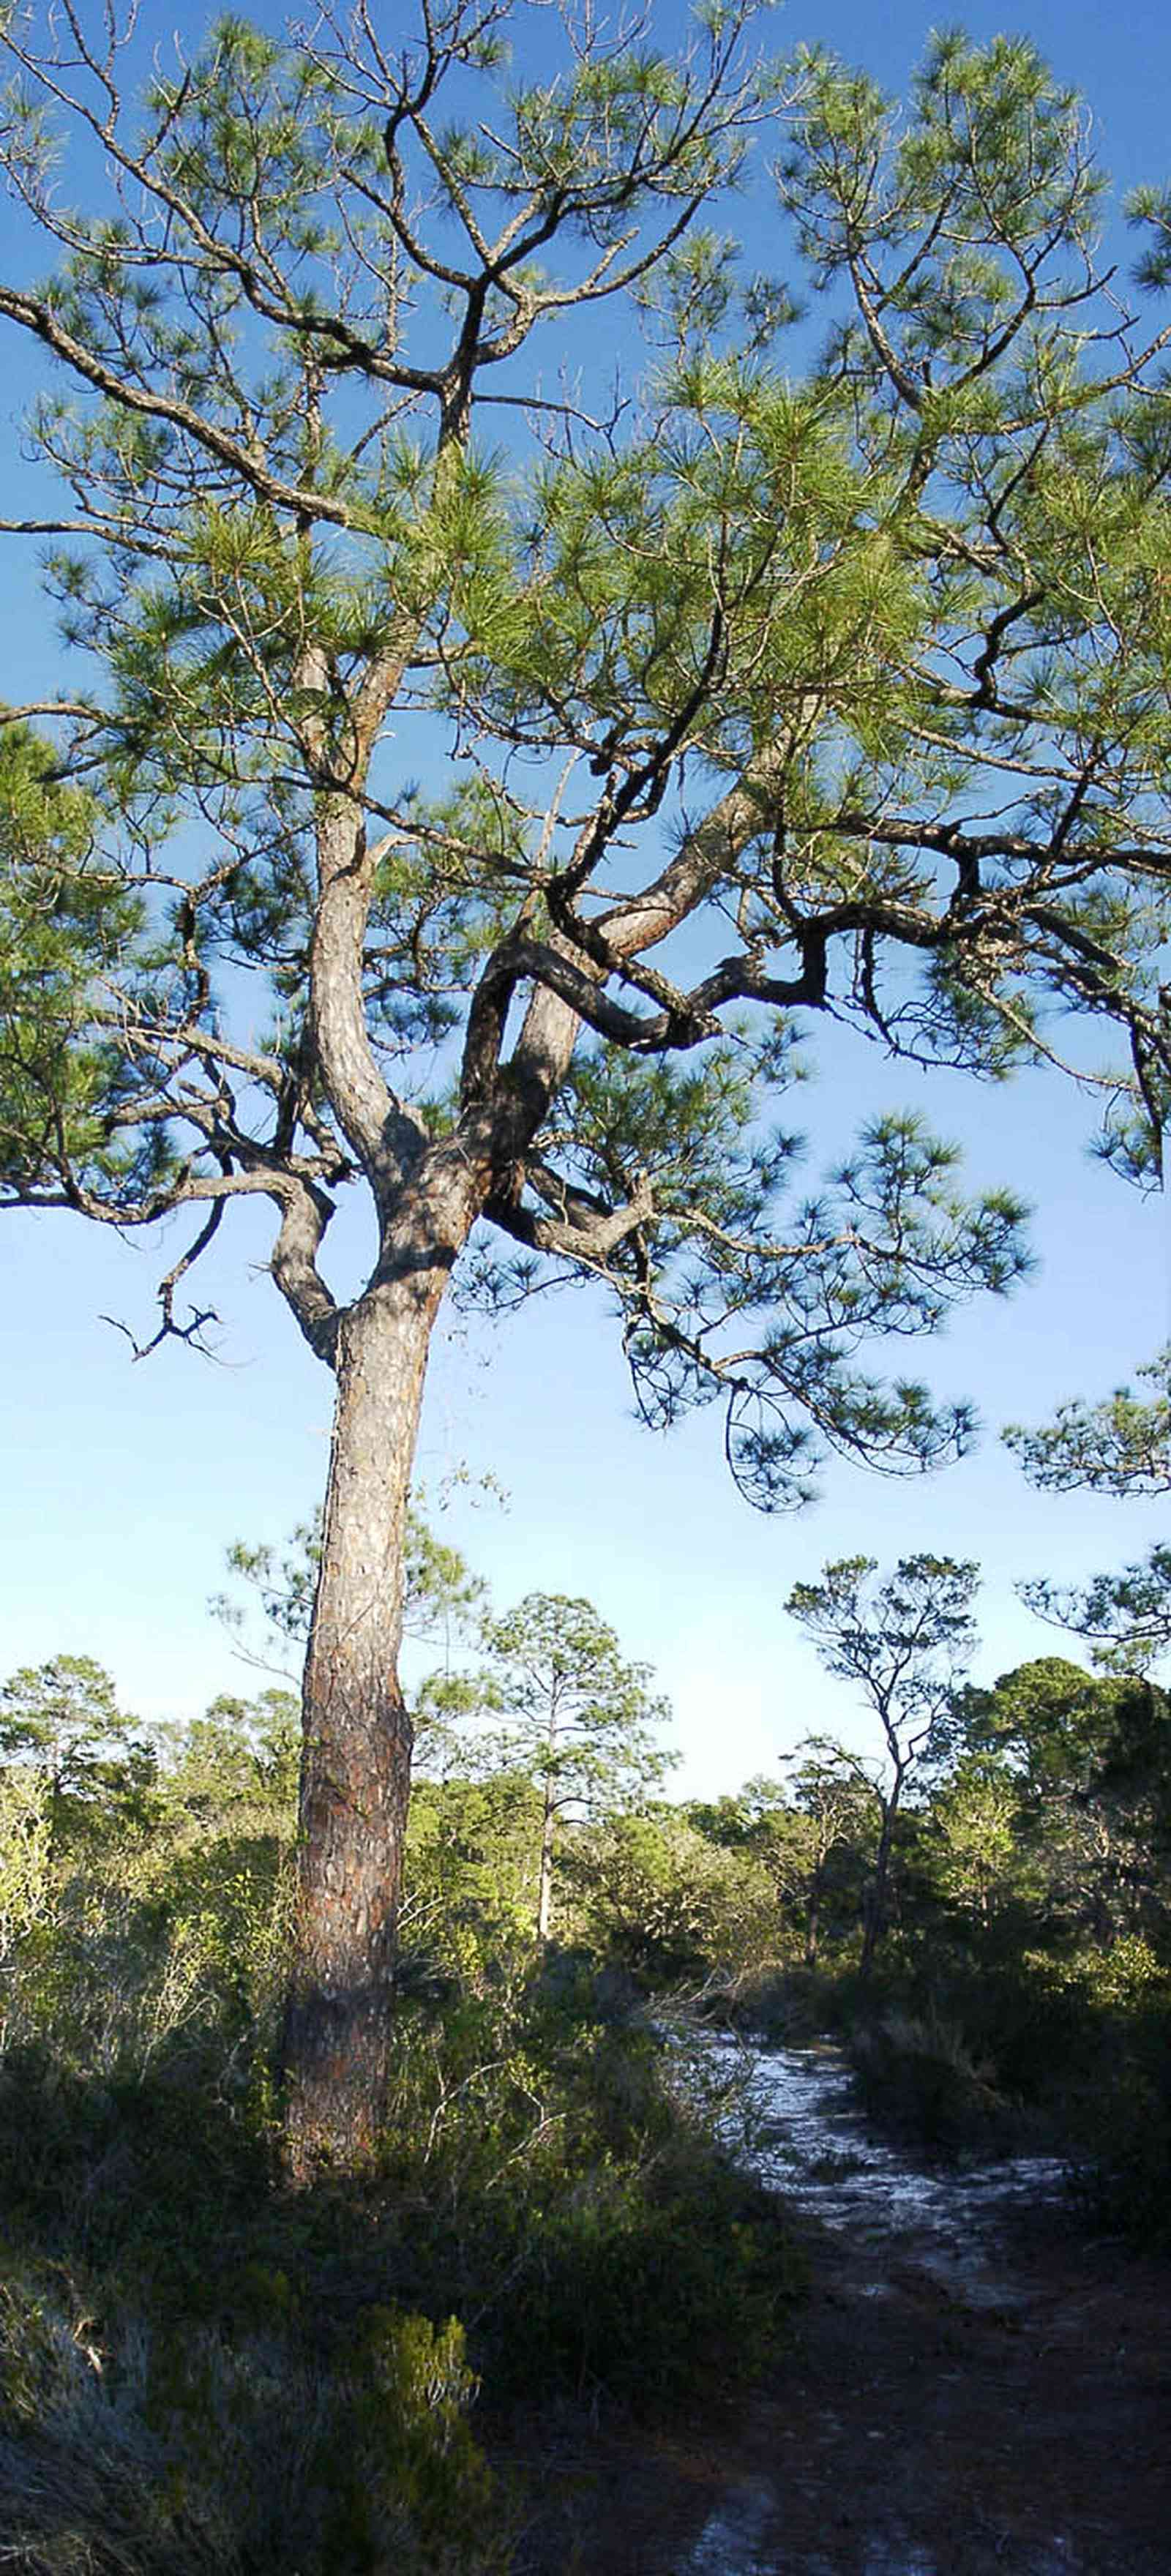 Perdido-Key:-Pine-Barrens_01.jpg:  short leaf pine tree, scrub pine forest, sand dune, florida rosemary, gulf coast, key, peninsula